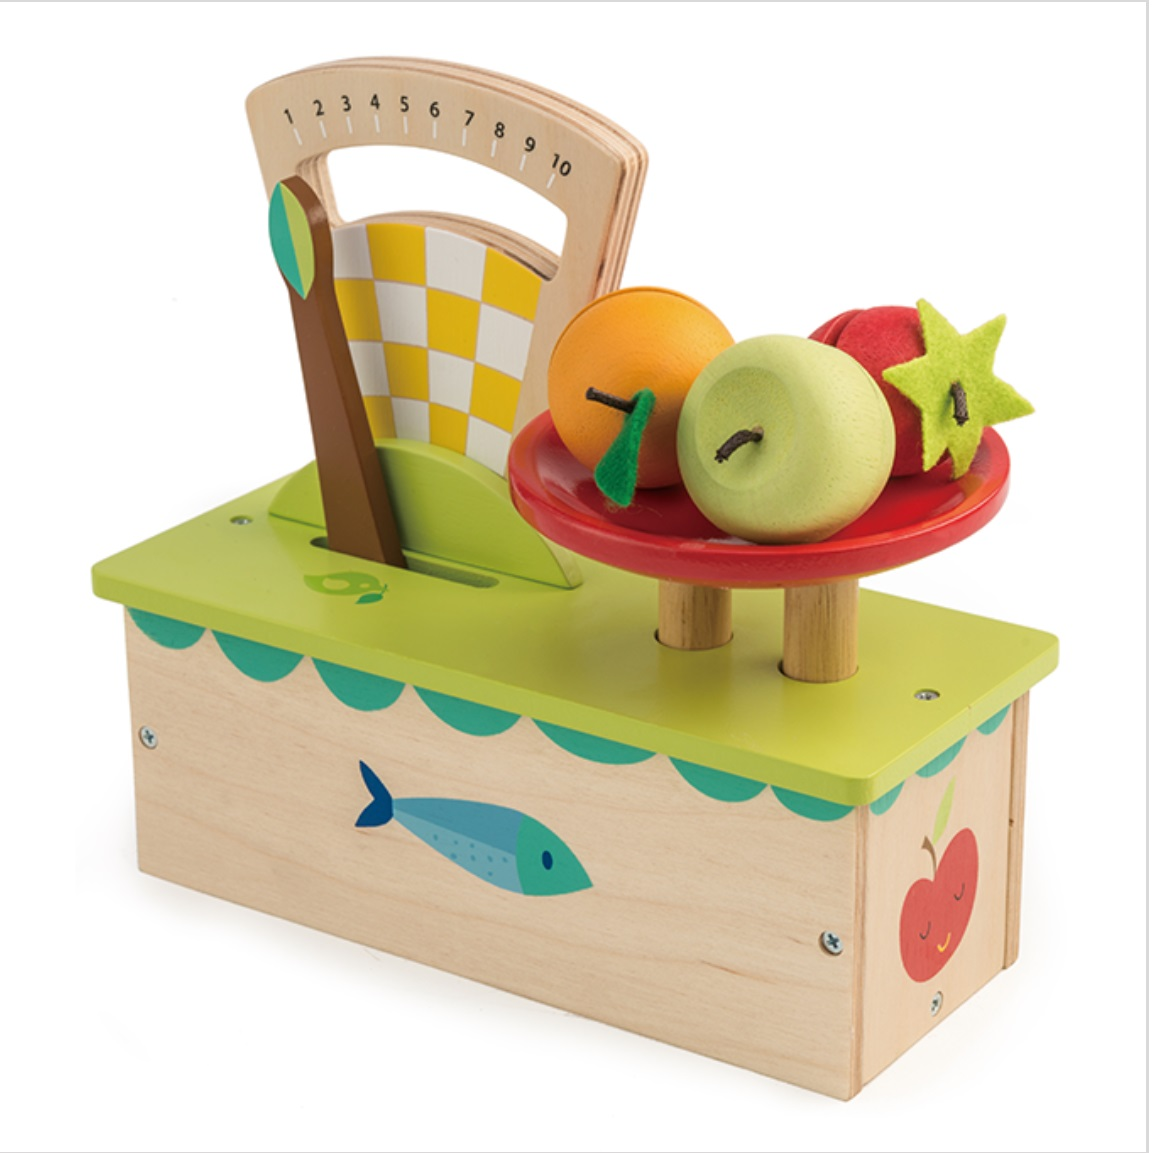 Tender Leaf Toys Wooden Scales With Fruit Smart Kid Store